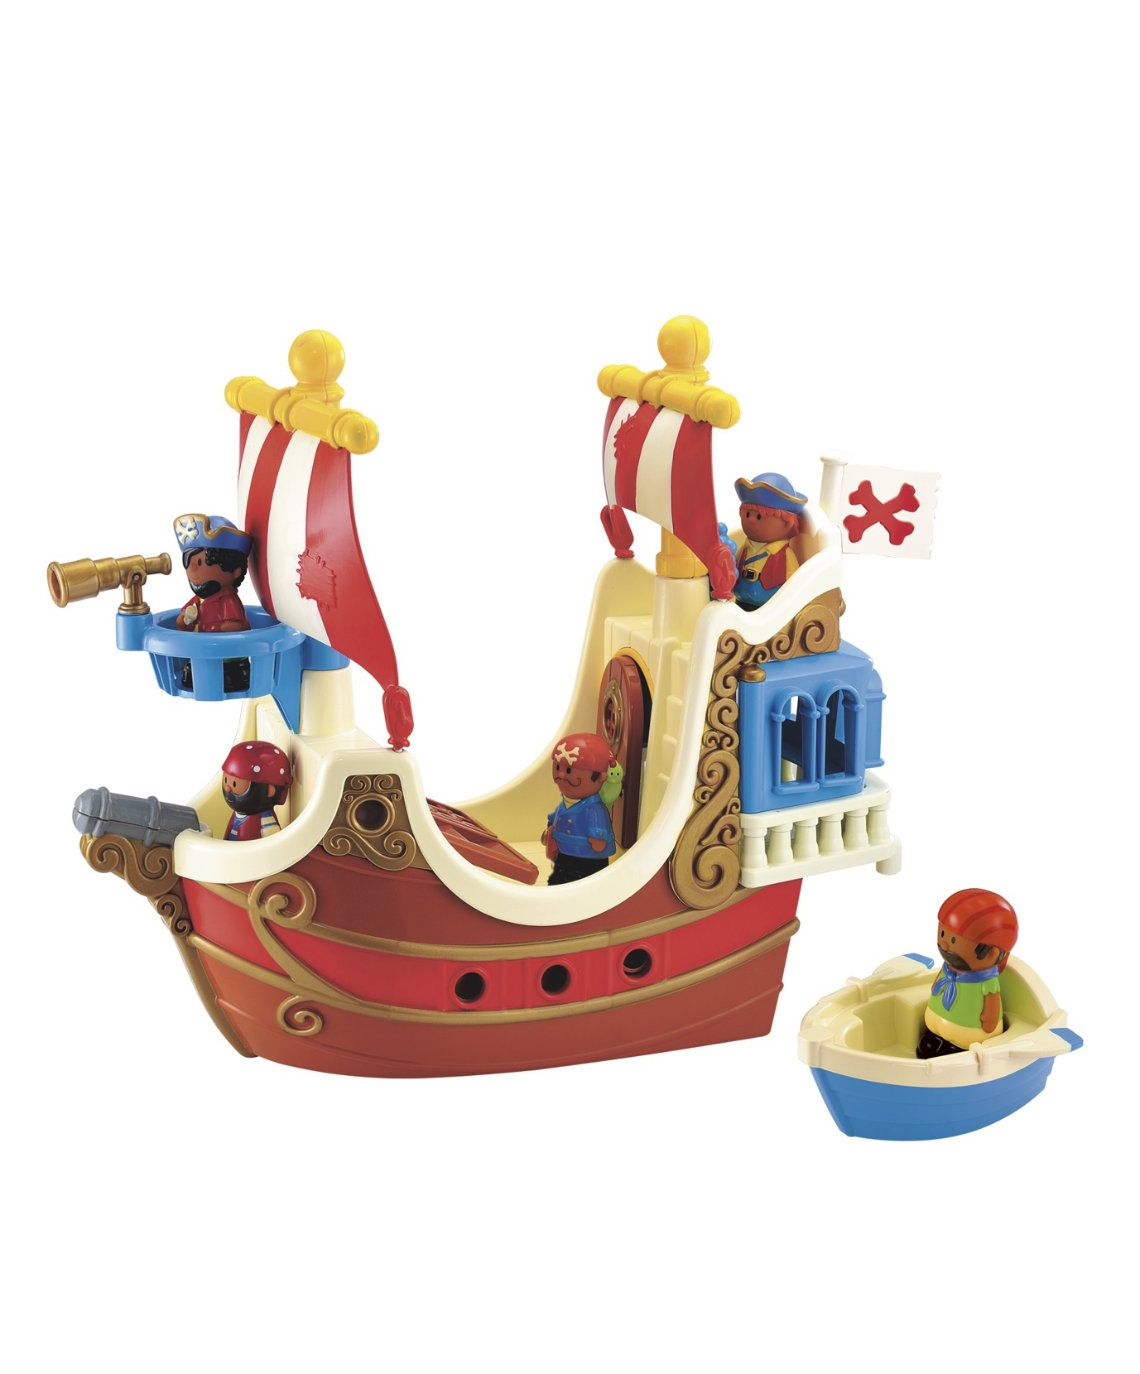 ELC HAPPYLAND PIRATE SHIP AND PIRATE CAVE SET WITH FIGURES